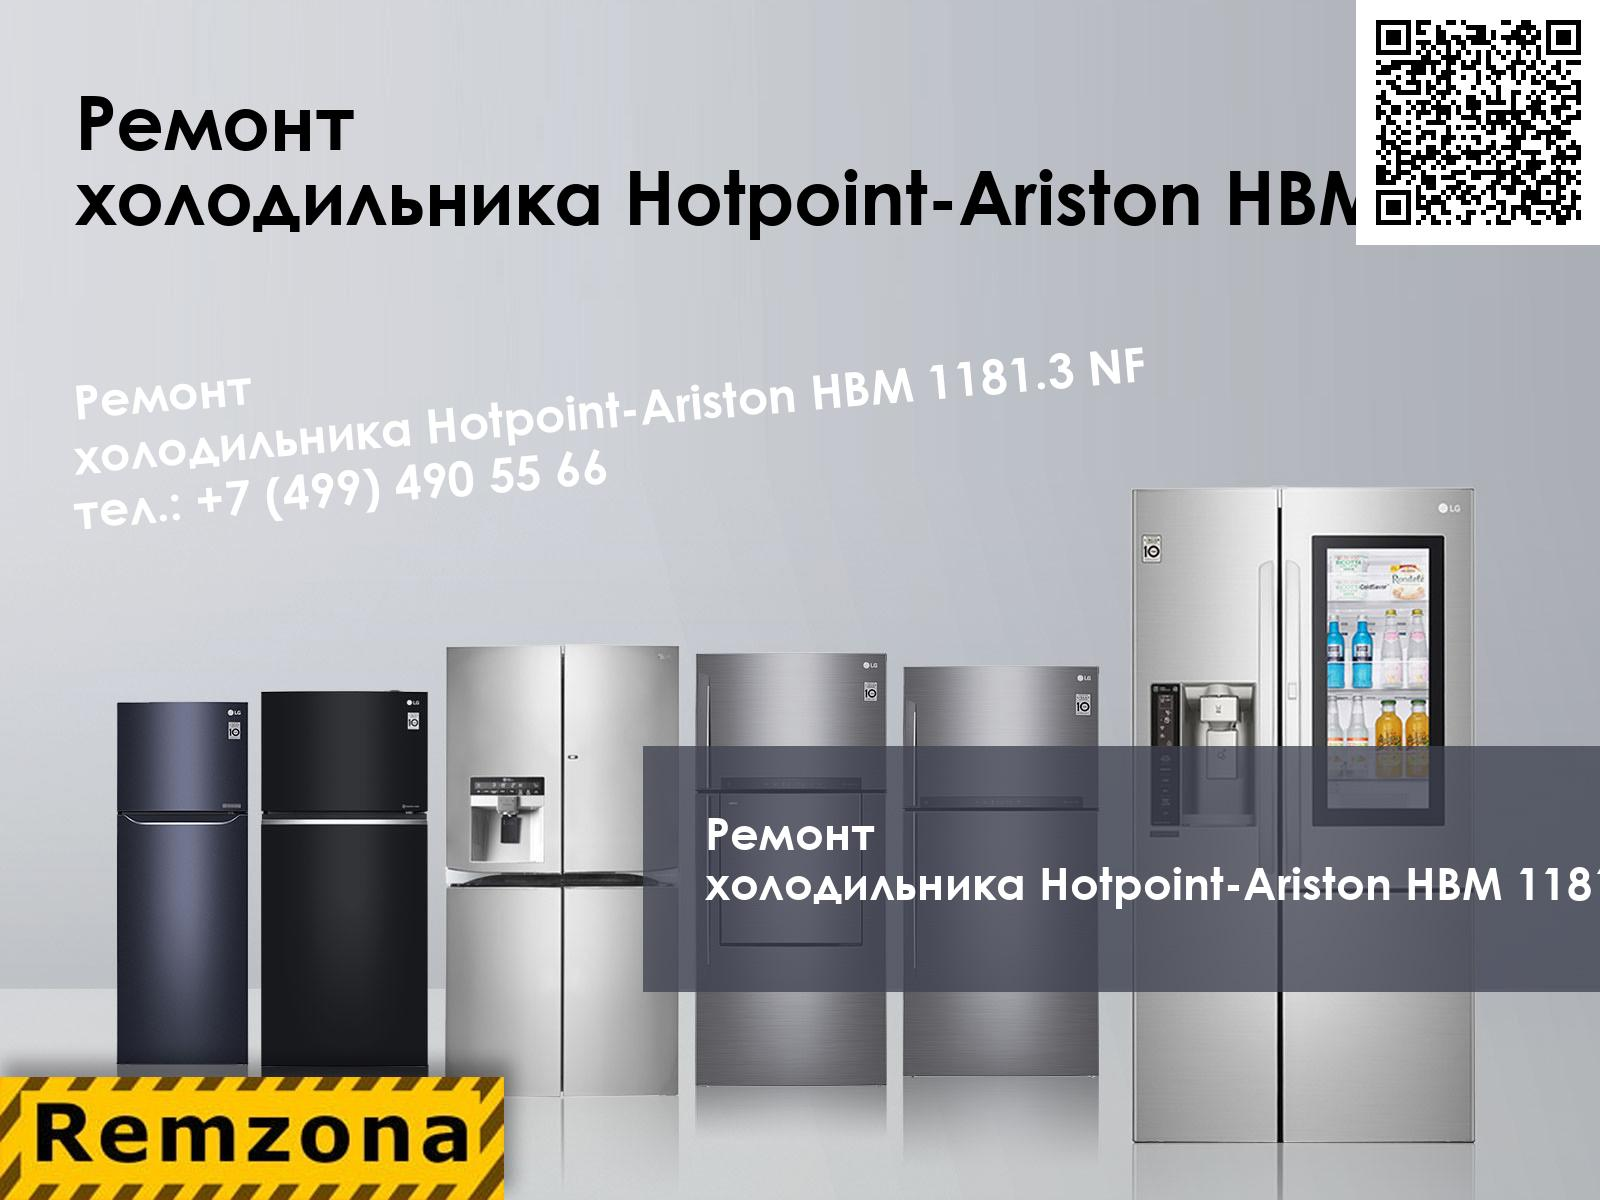 Ремонт холодильника Hotpoint-Ariston HBM 1181.3 NF